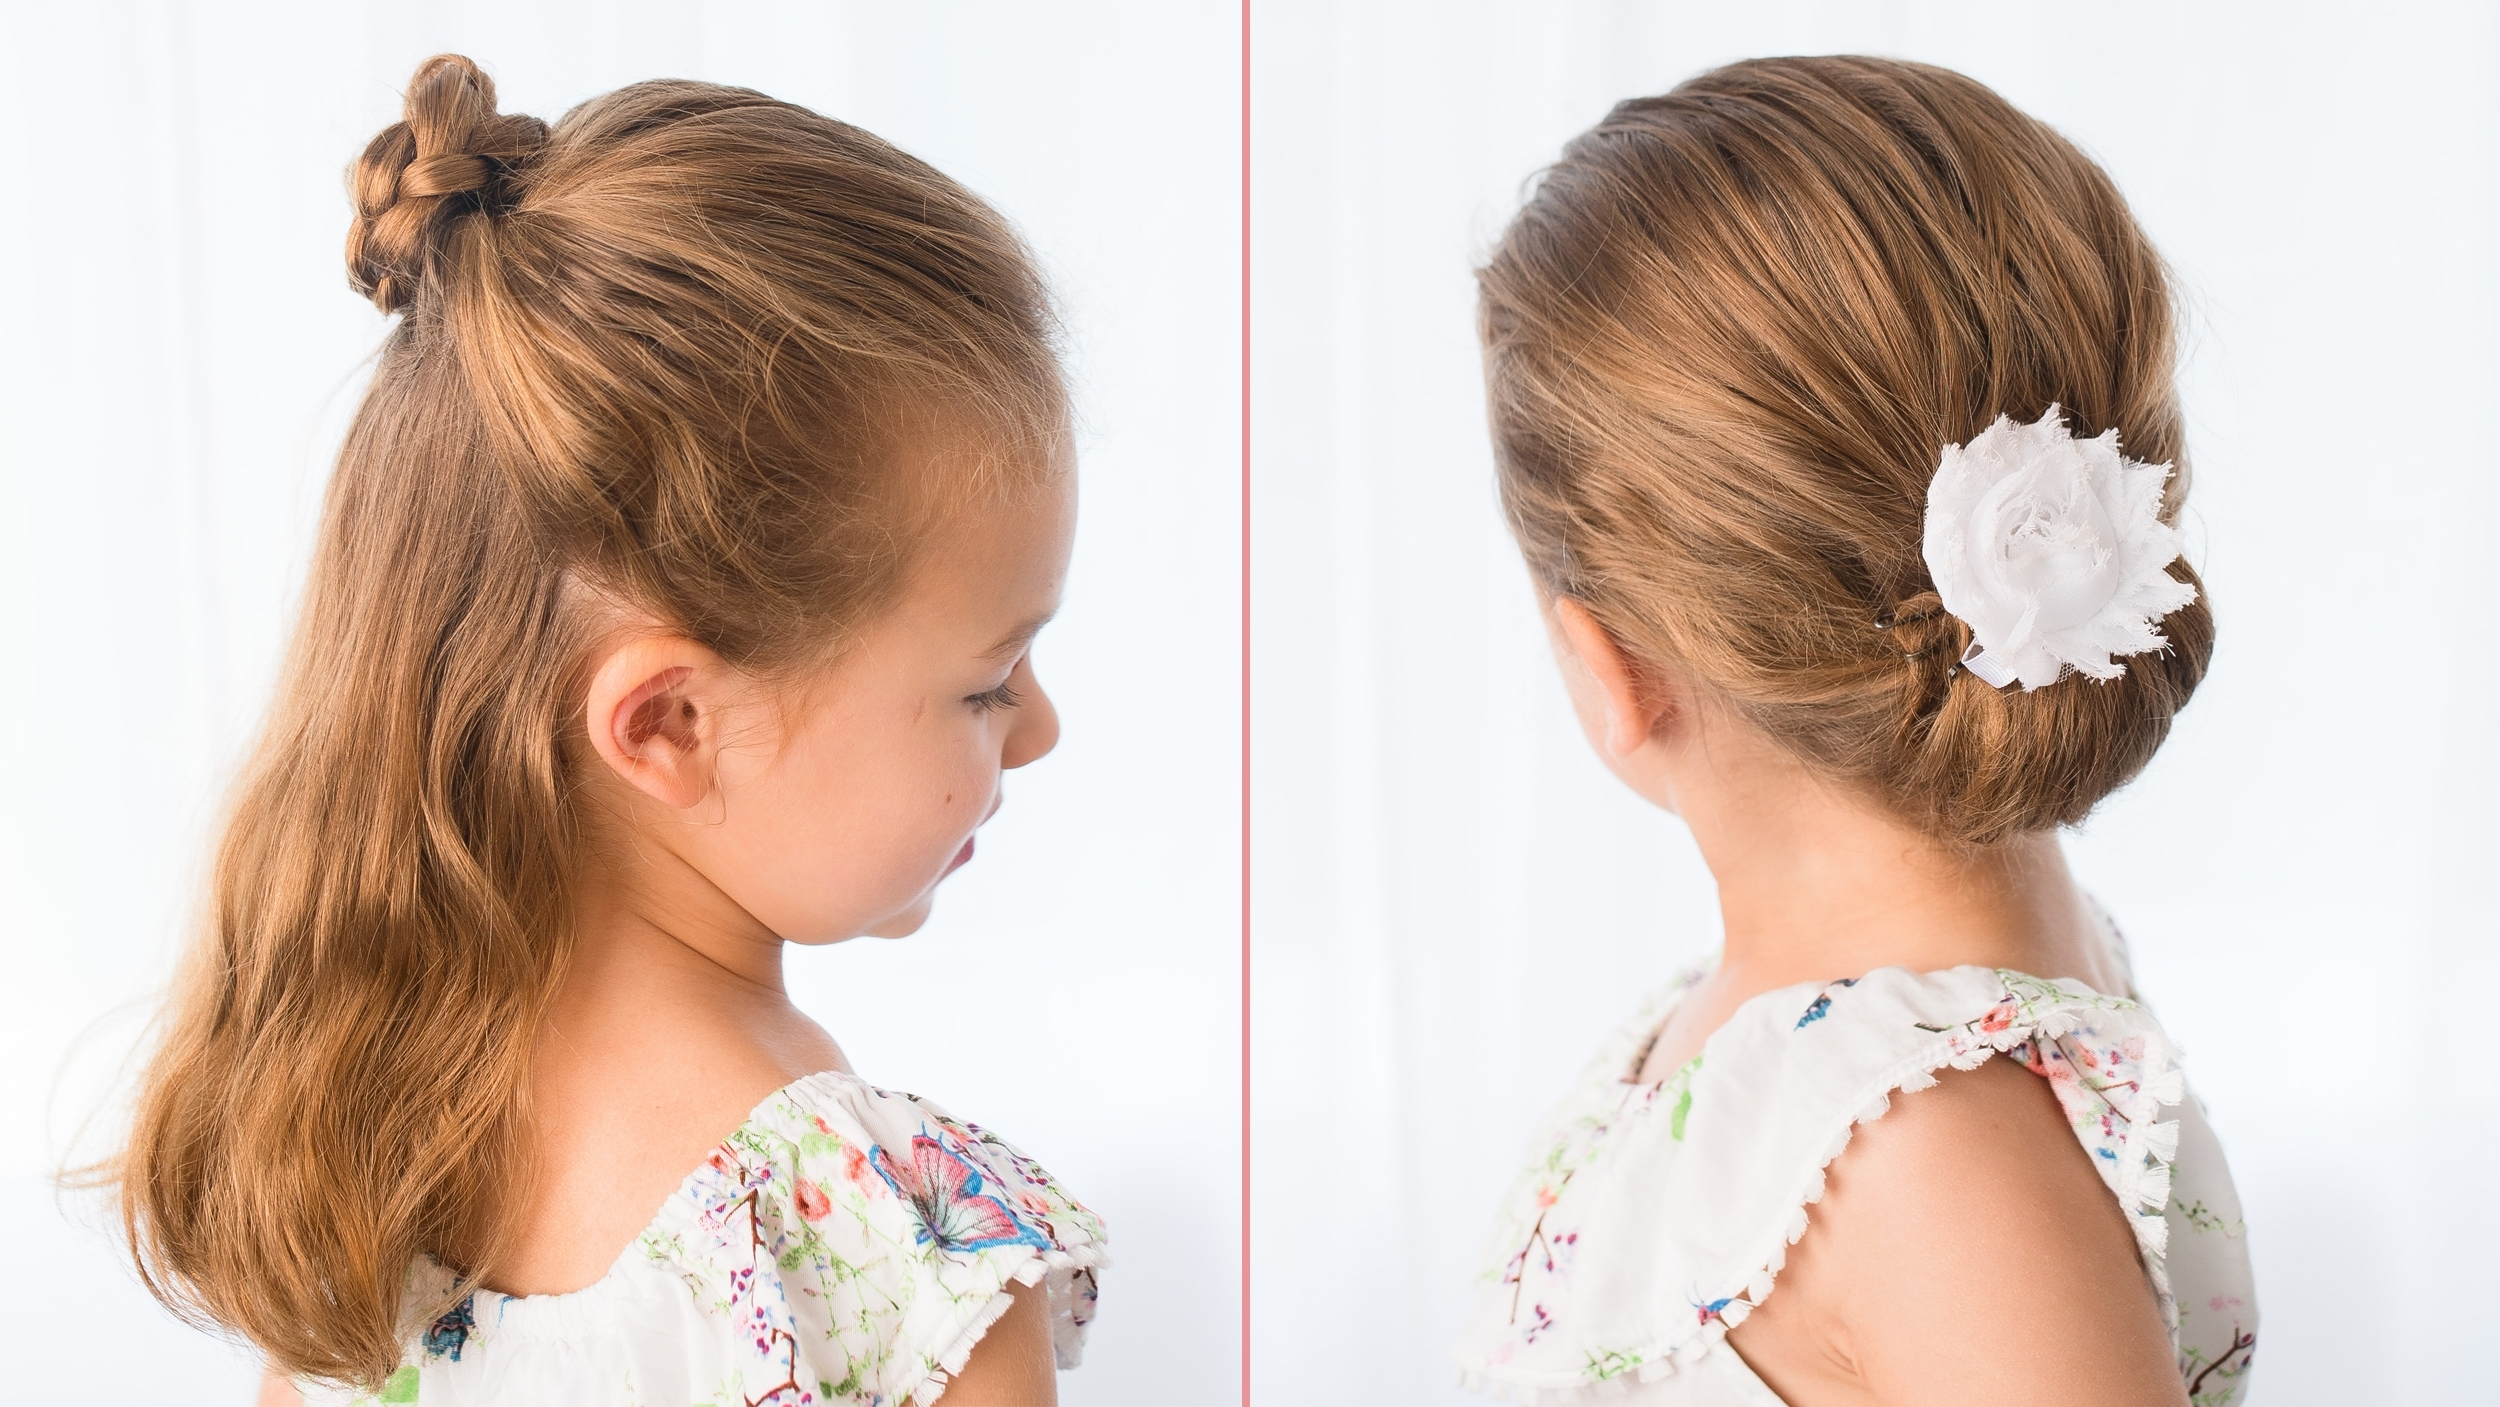 Easy Hairstyles For Girls That You Can Create In Minutes For Children's Updo Hairstyles (View 4 of 15)